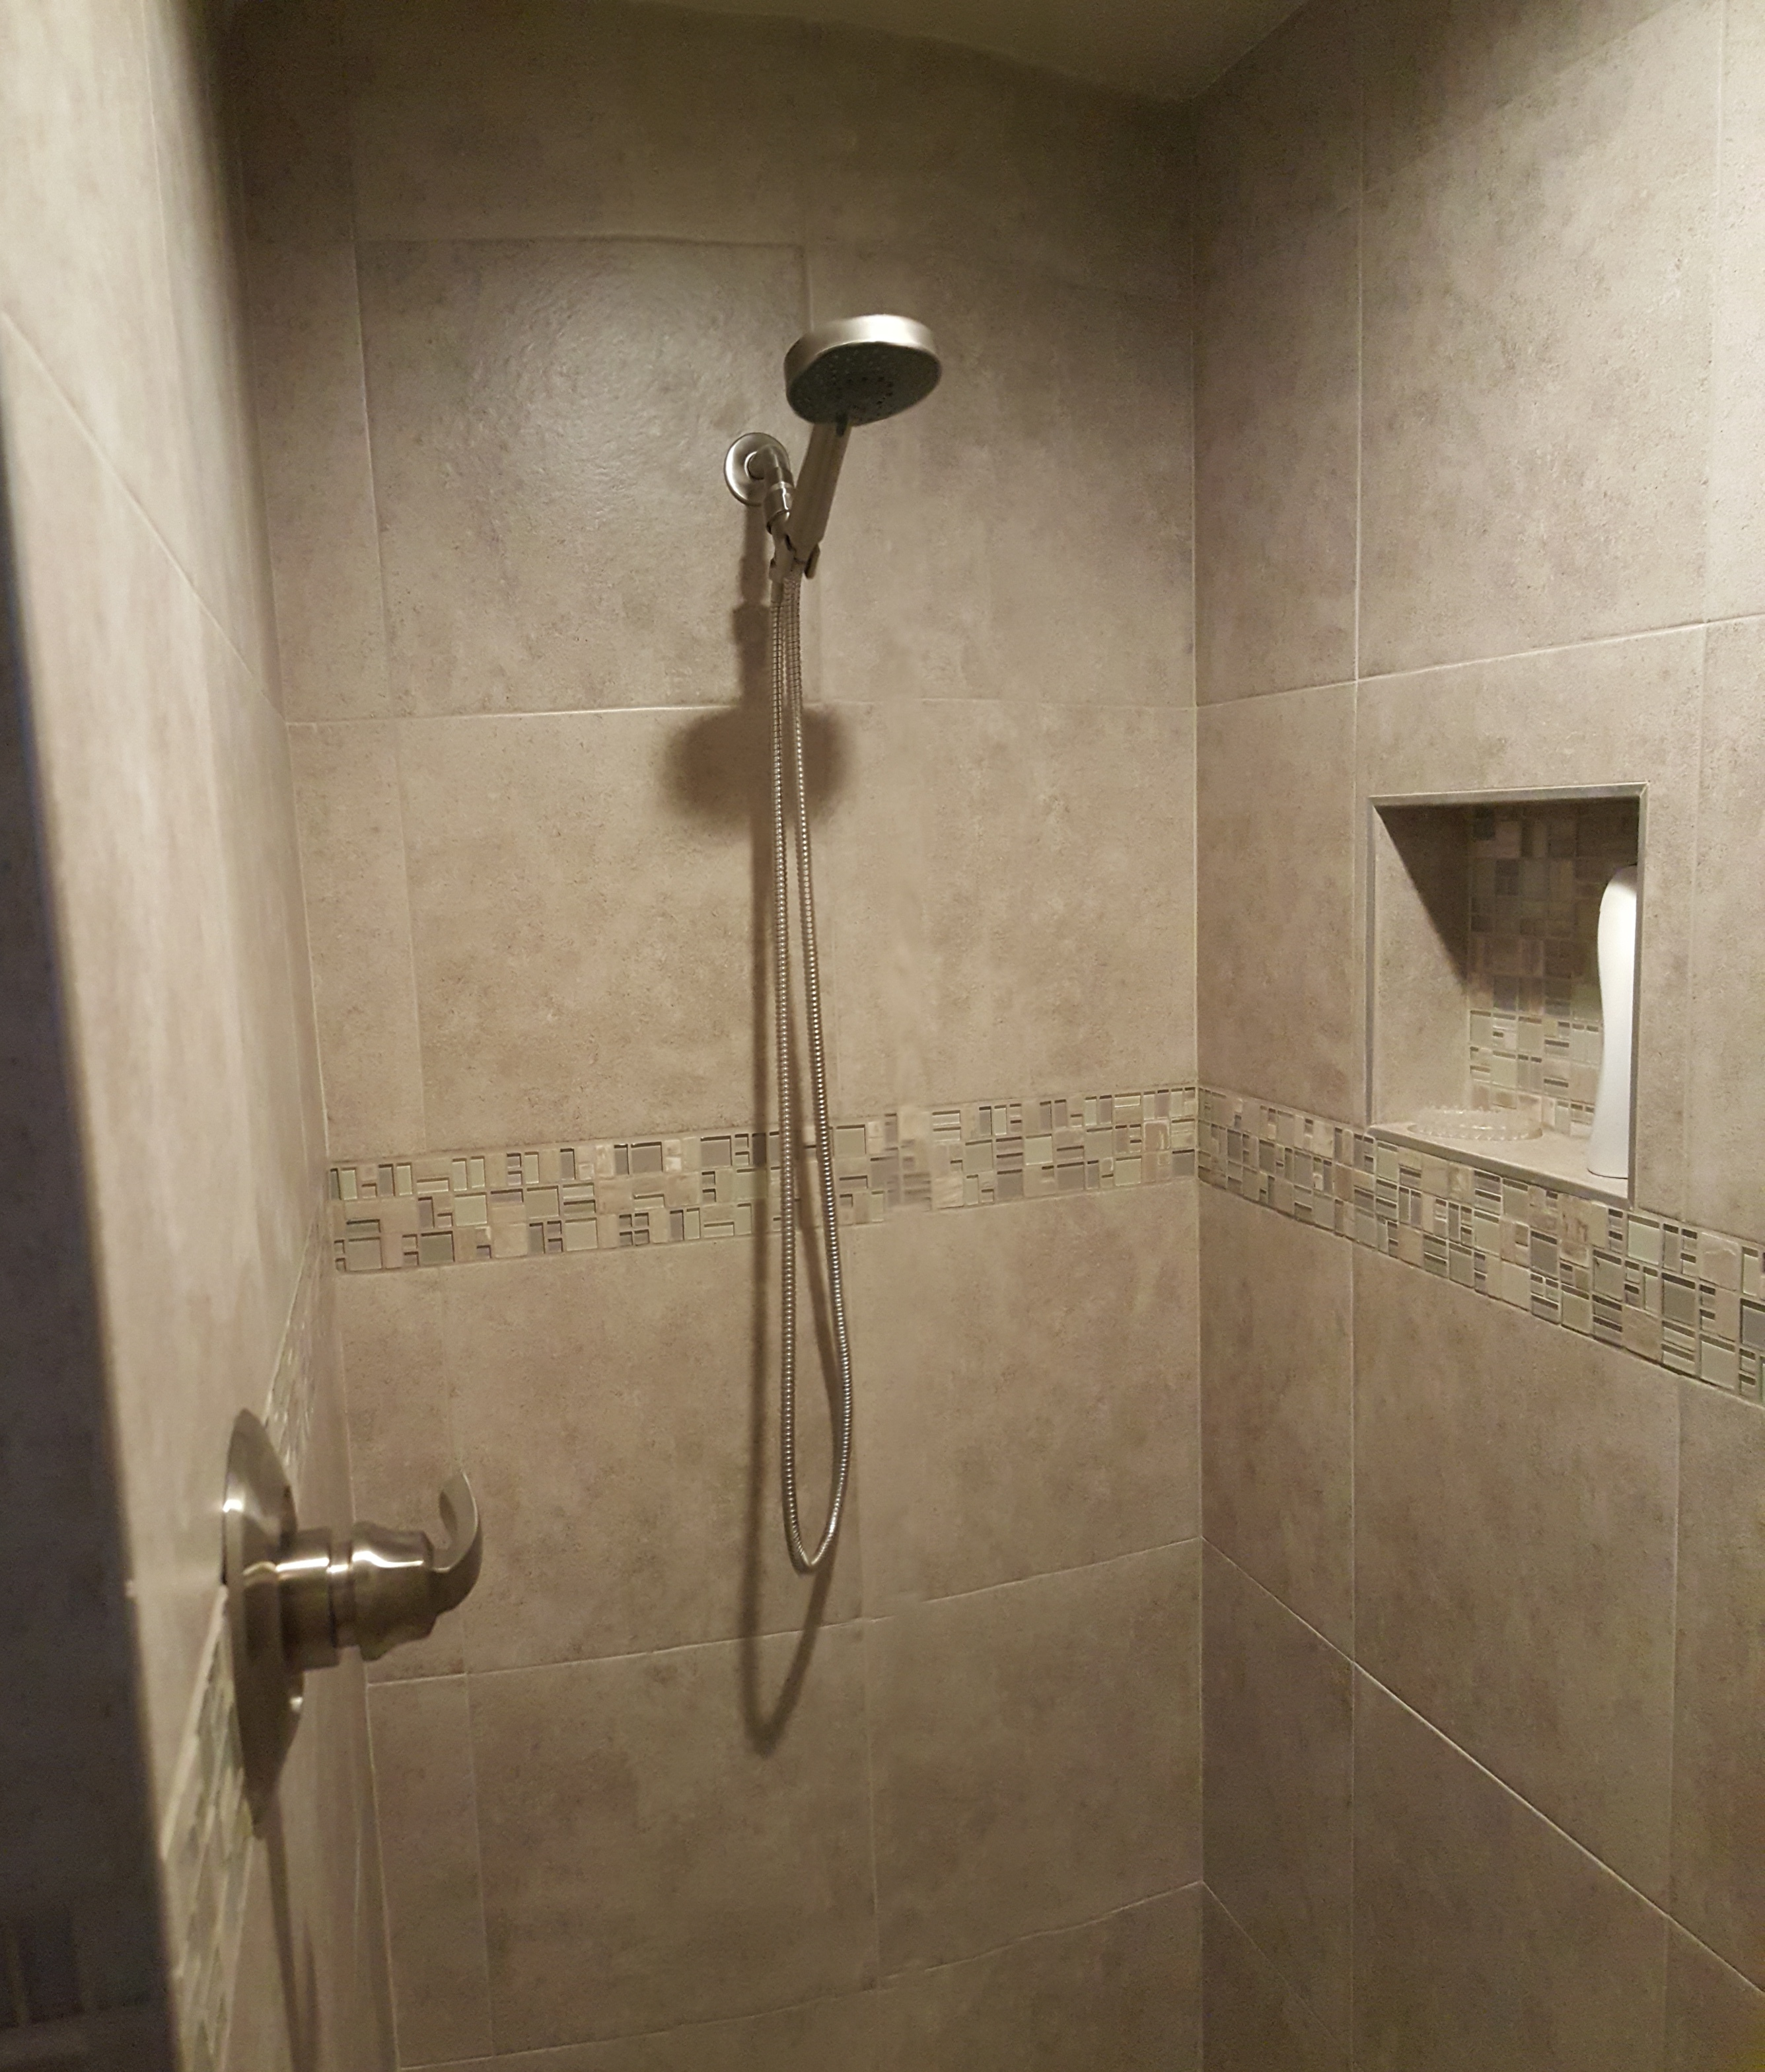 Bathroom/shower upgrade - We are your AirBnB hosts forum!